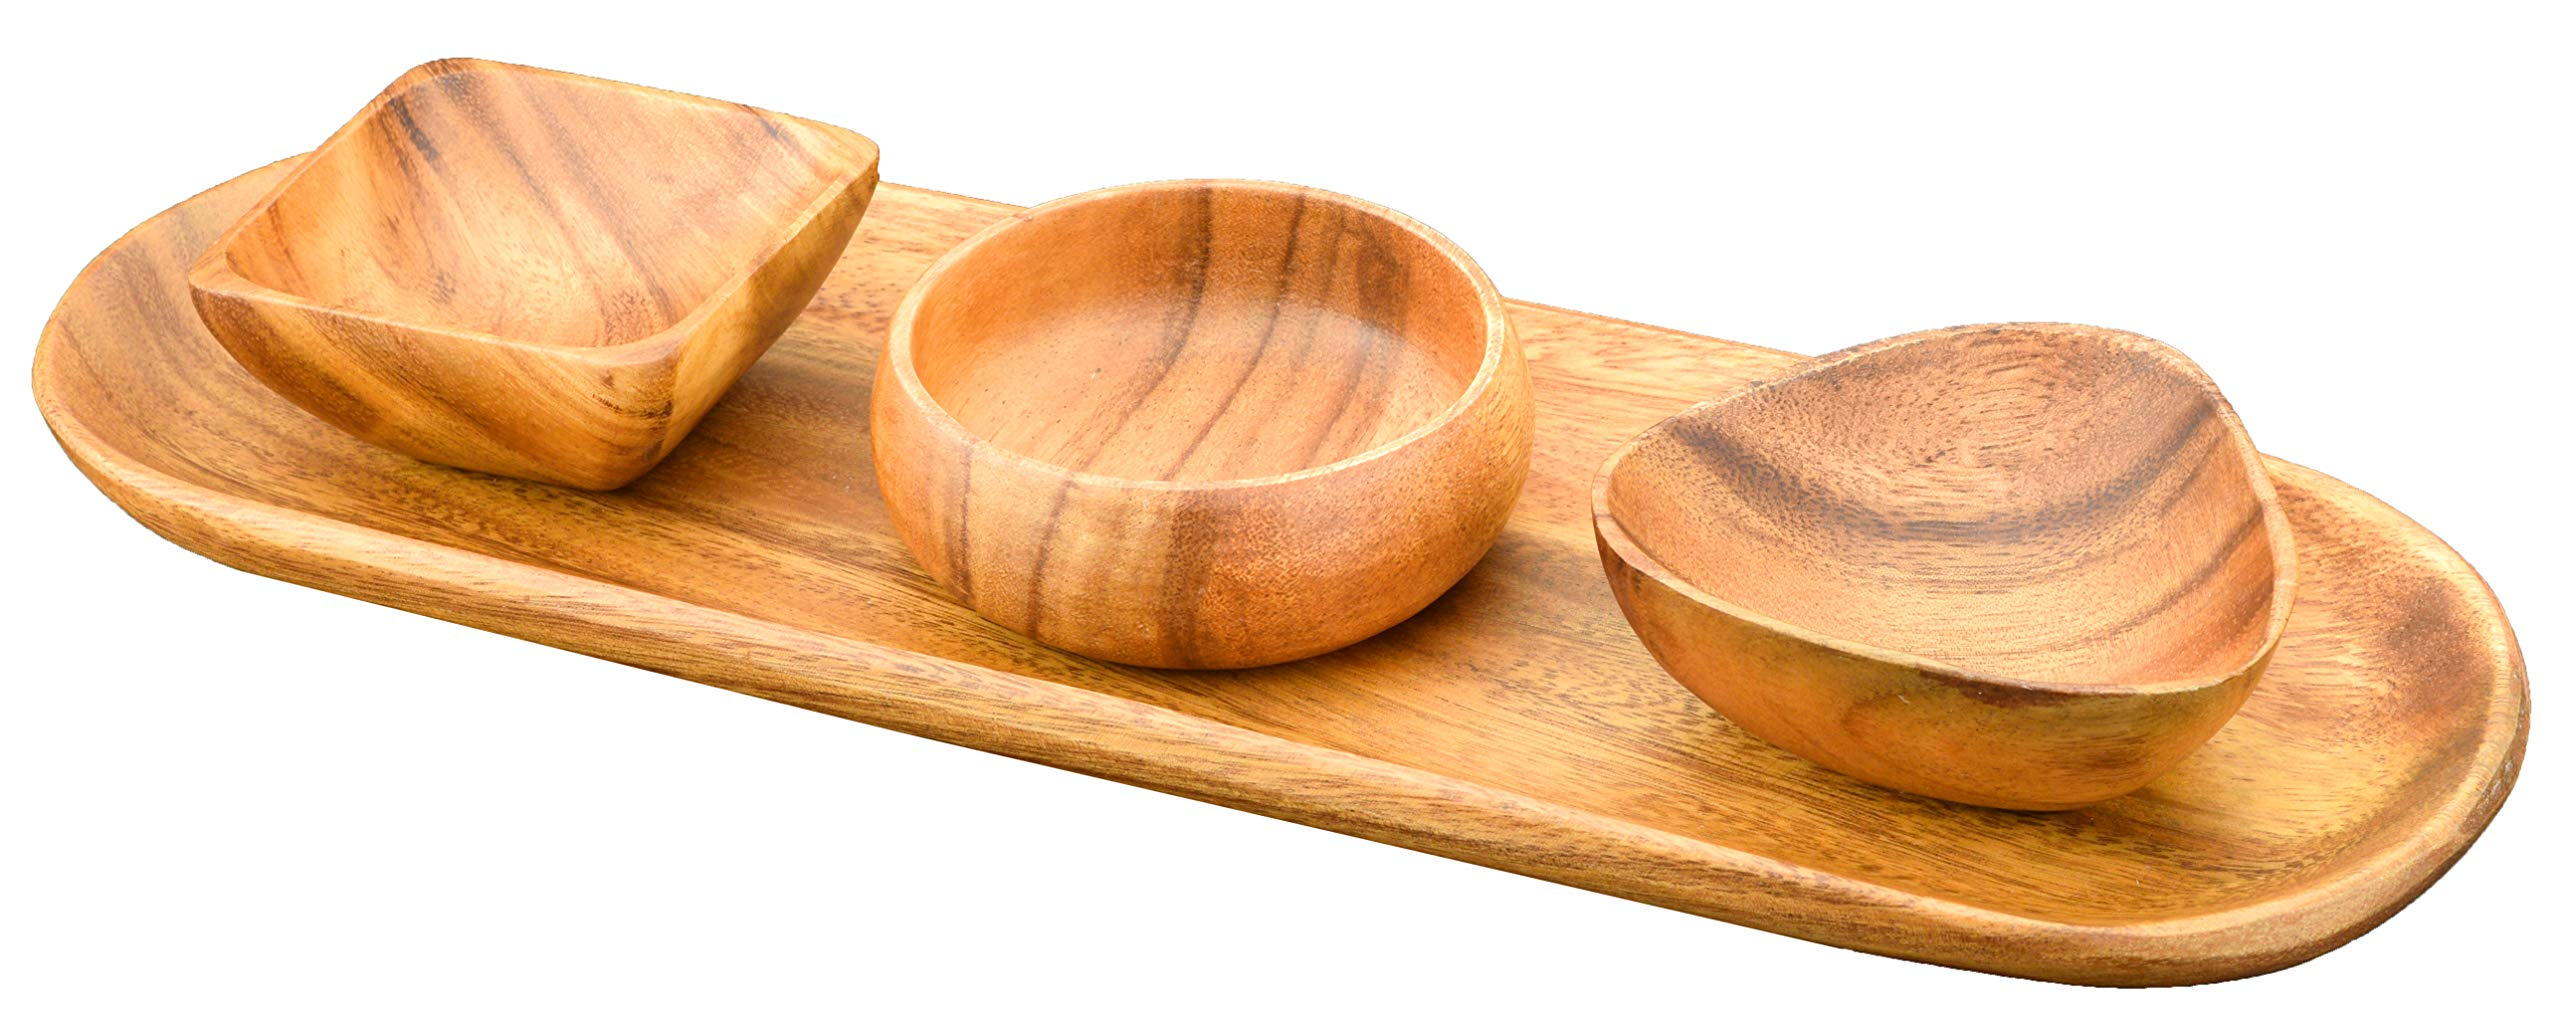 Acaciaware Acacia Wood Bread and Appetizer Tray with (3) 4-inch by 1.5-inch Dipping and Nut Bowls (3 Assorted Bowl Shapes)